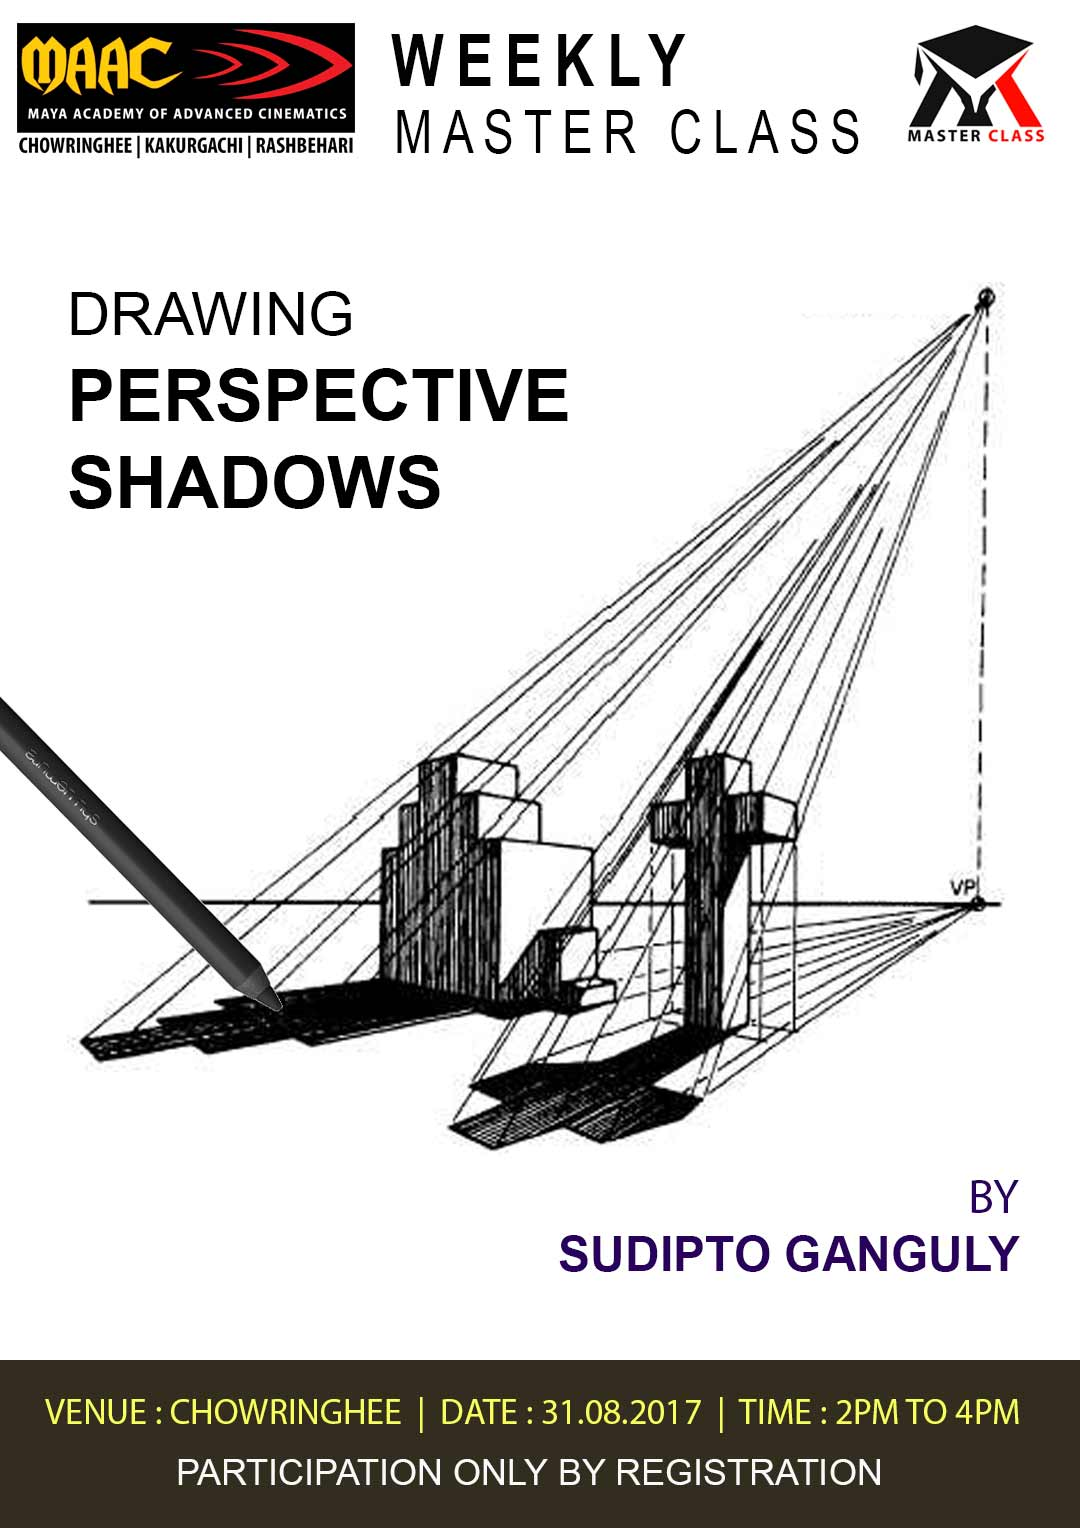 Weekly Master Class on Drawing Perspective Shadows - Sudipto Ganguli